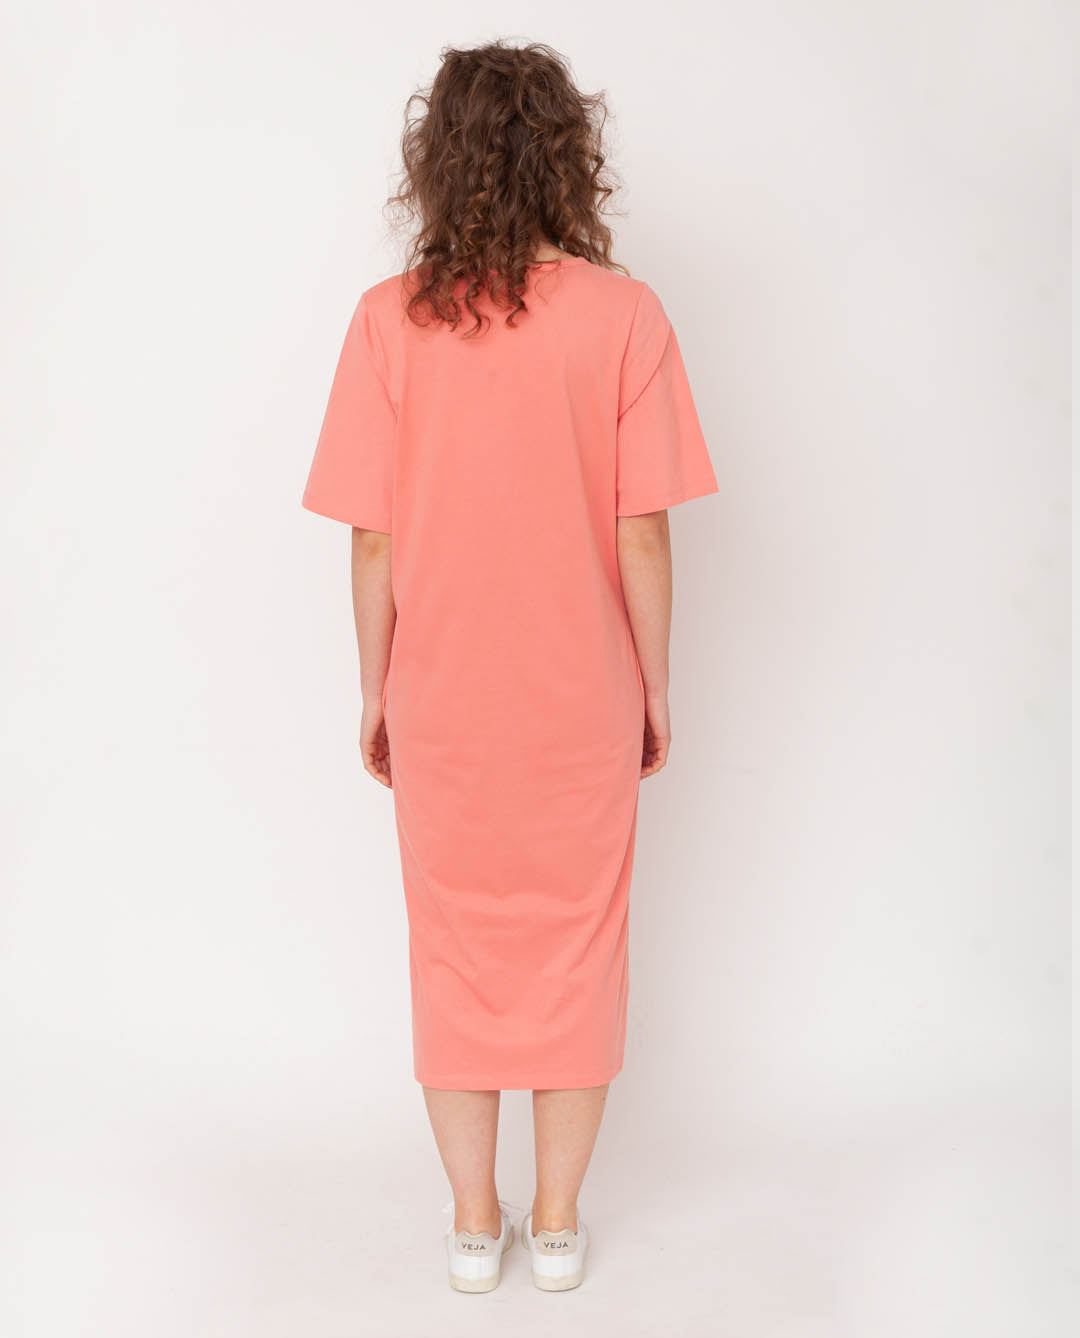 Ellie Organic Cotton Dress In Blush